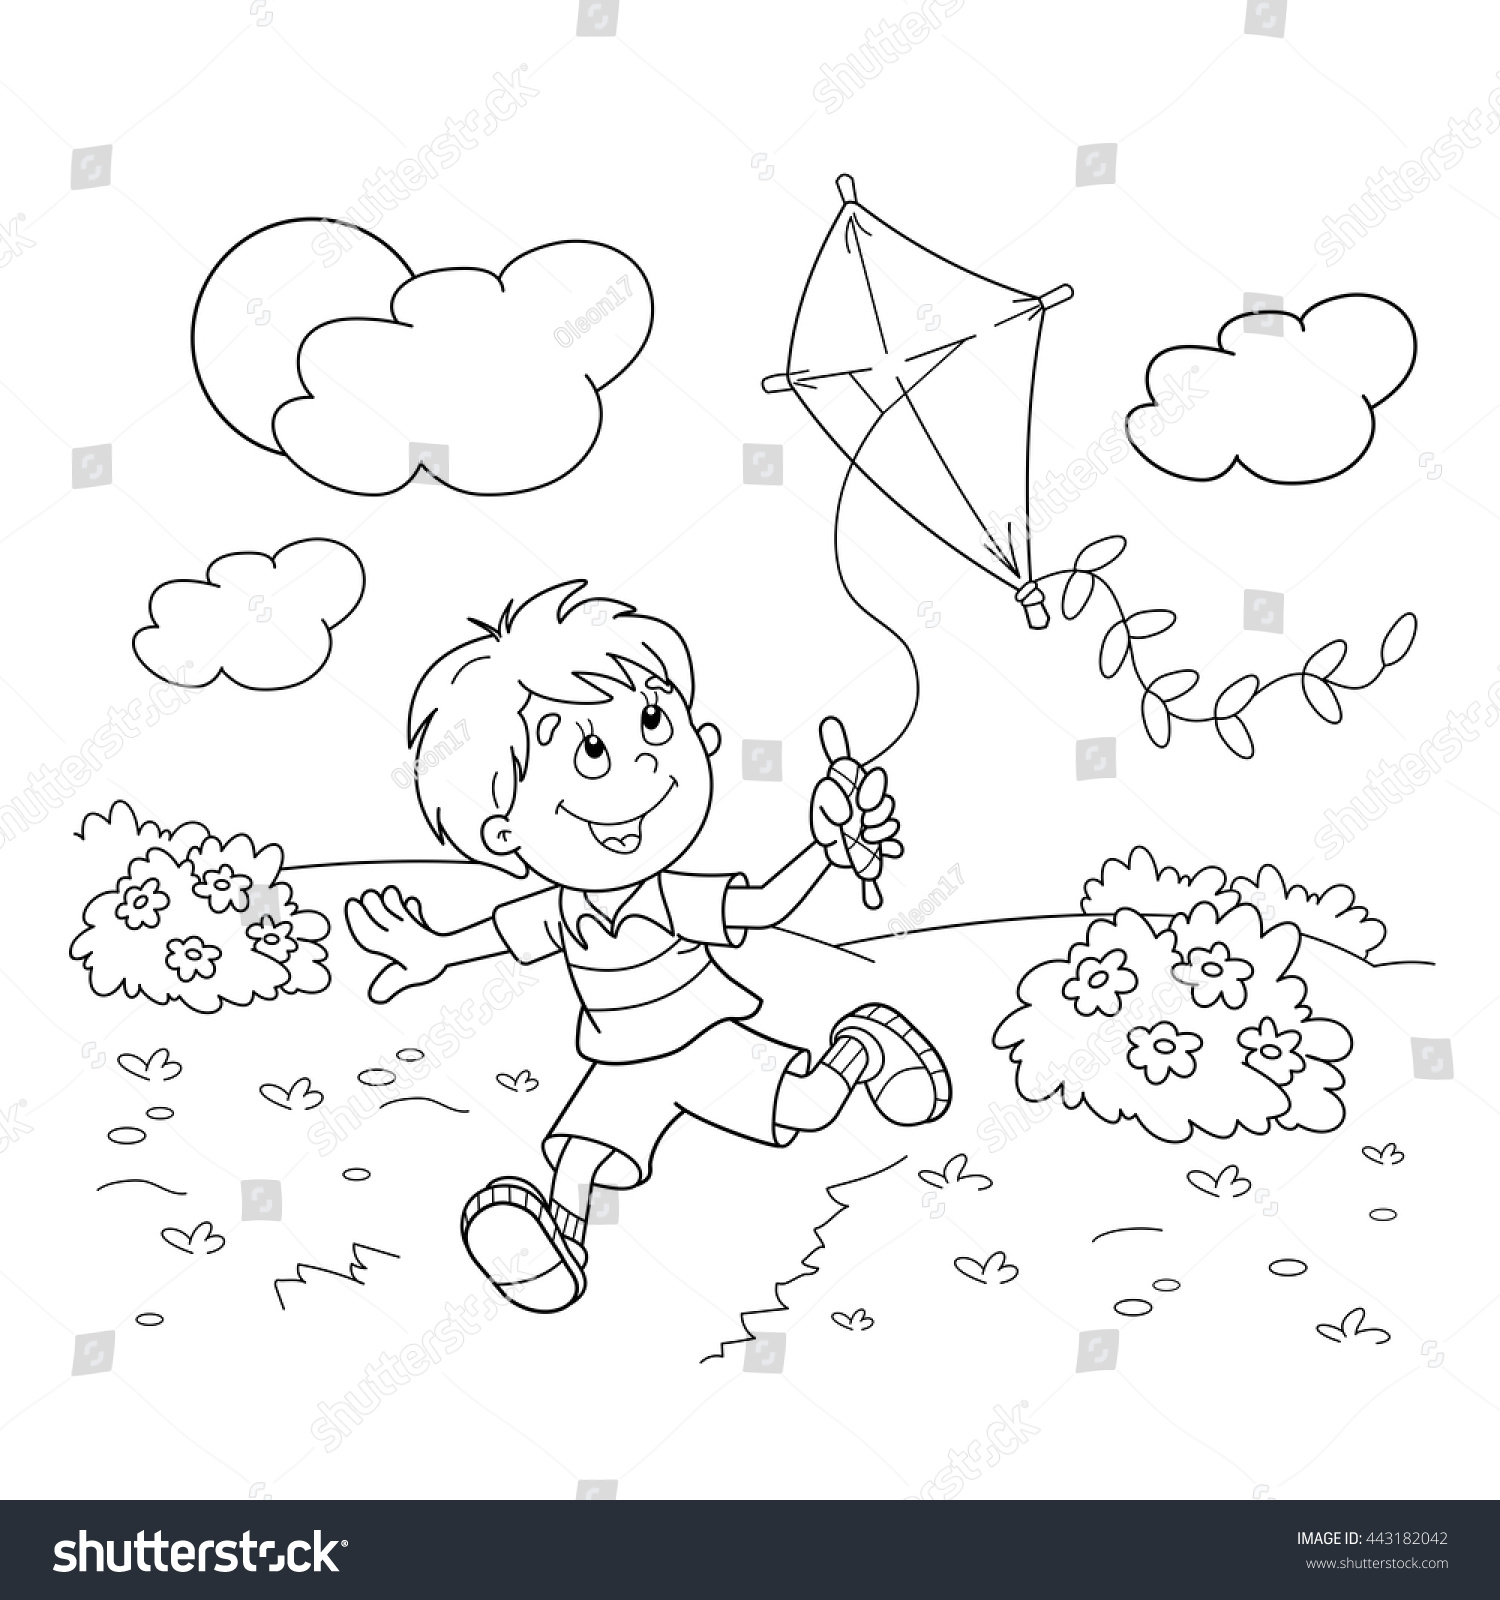 Coloring Page Outline Cartoon Boy Running Stock Vector 443182042